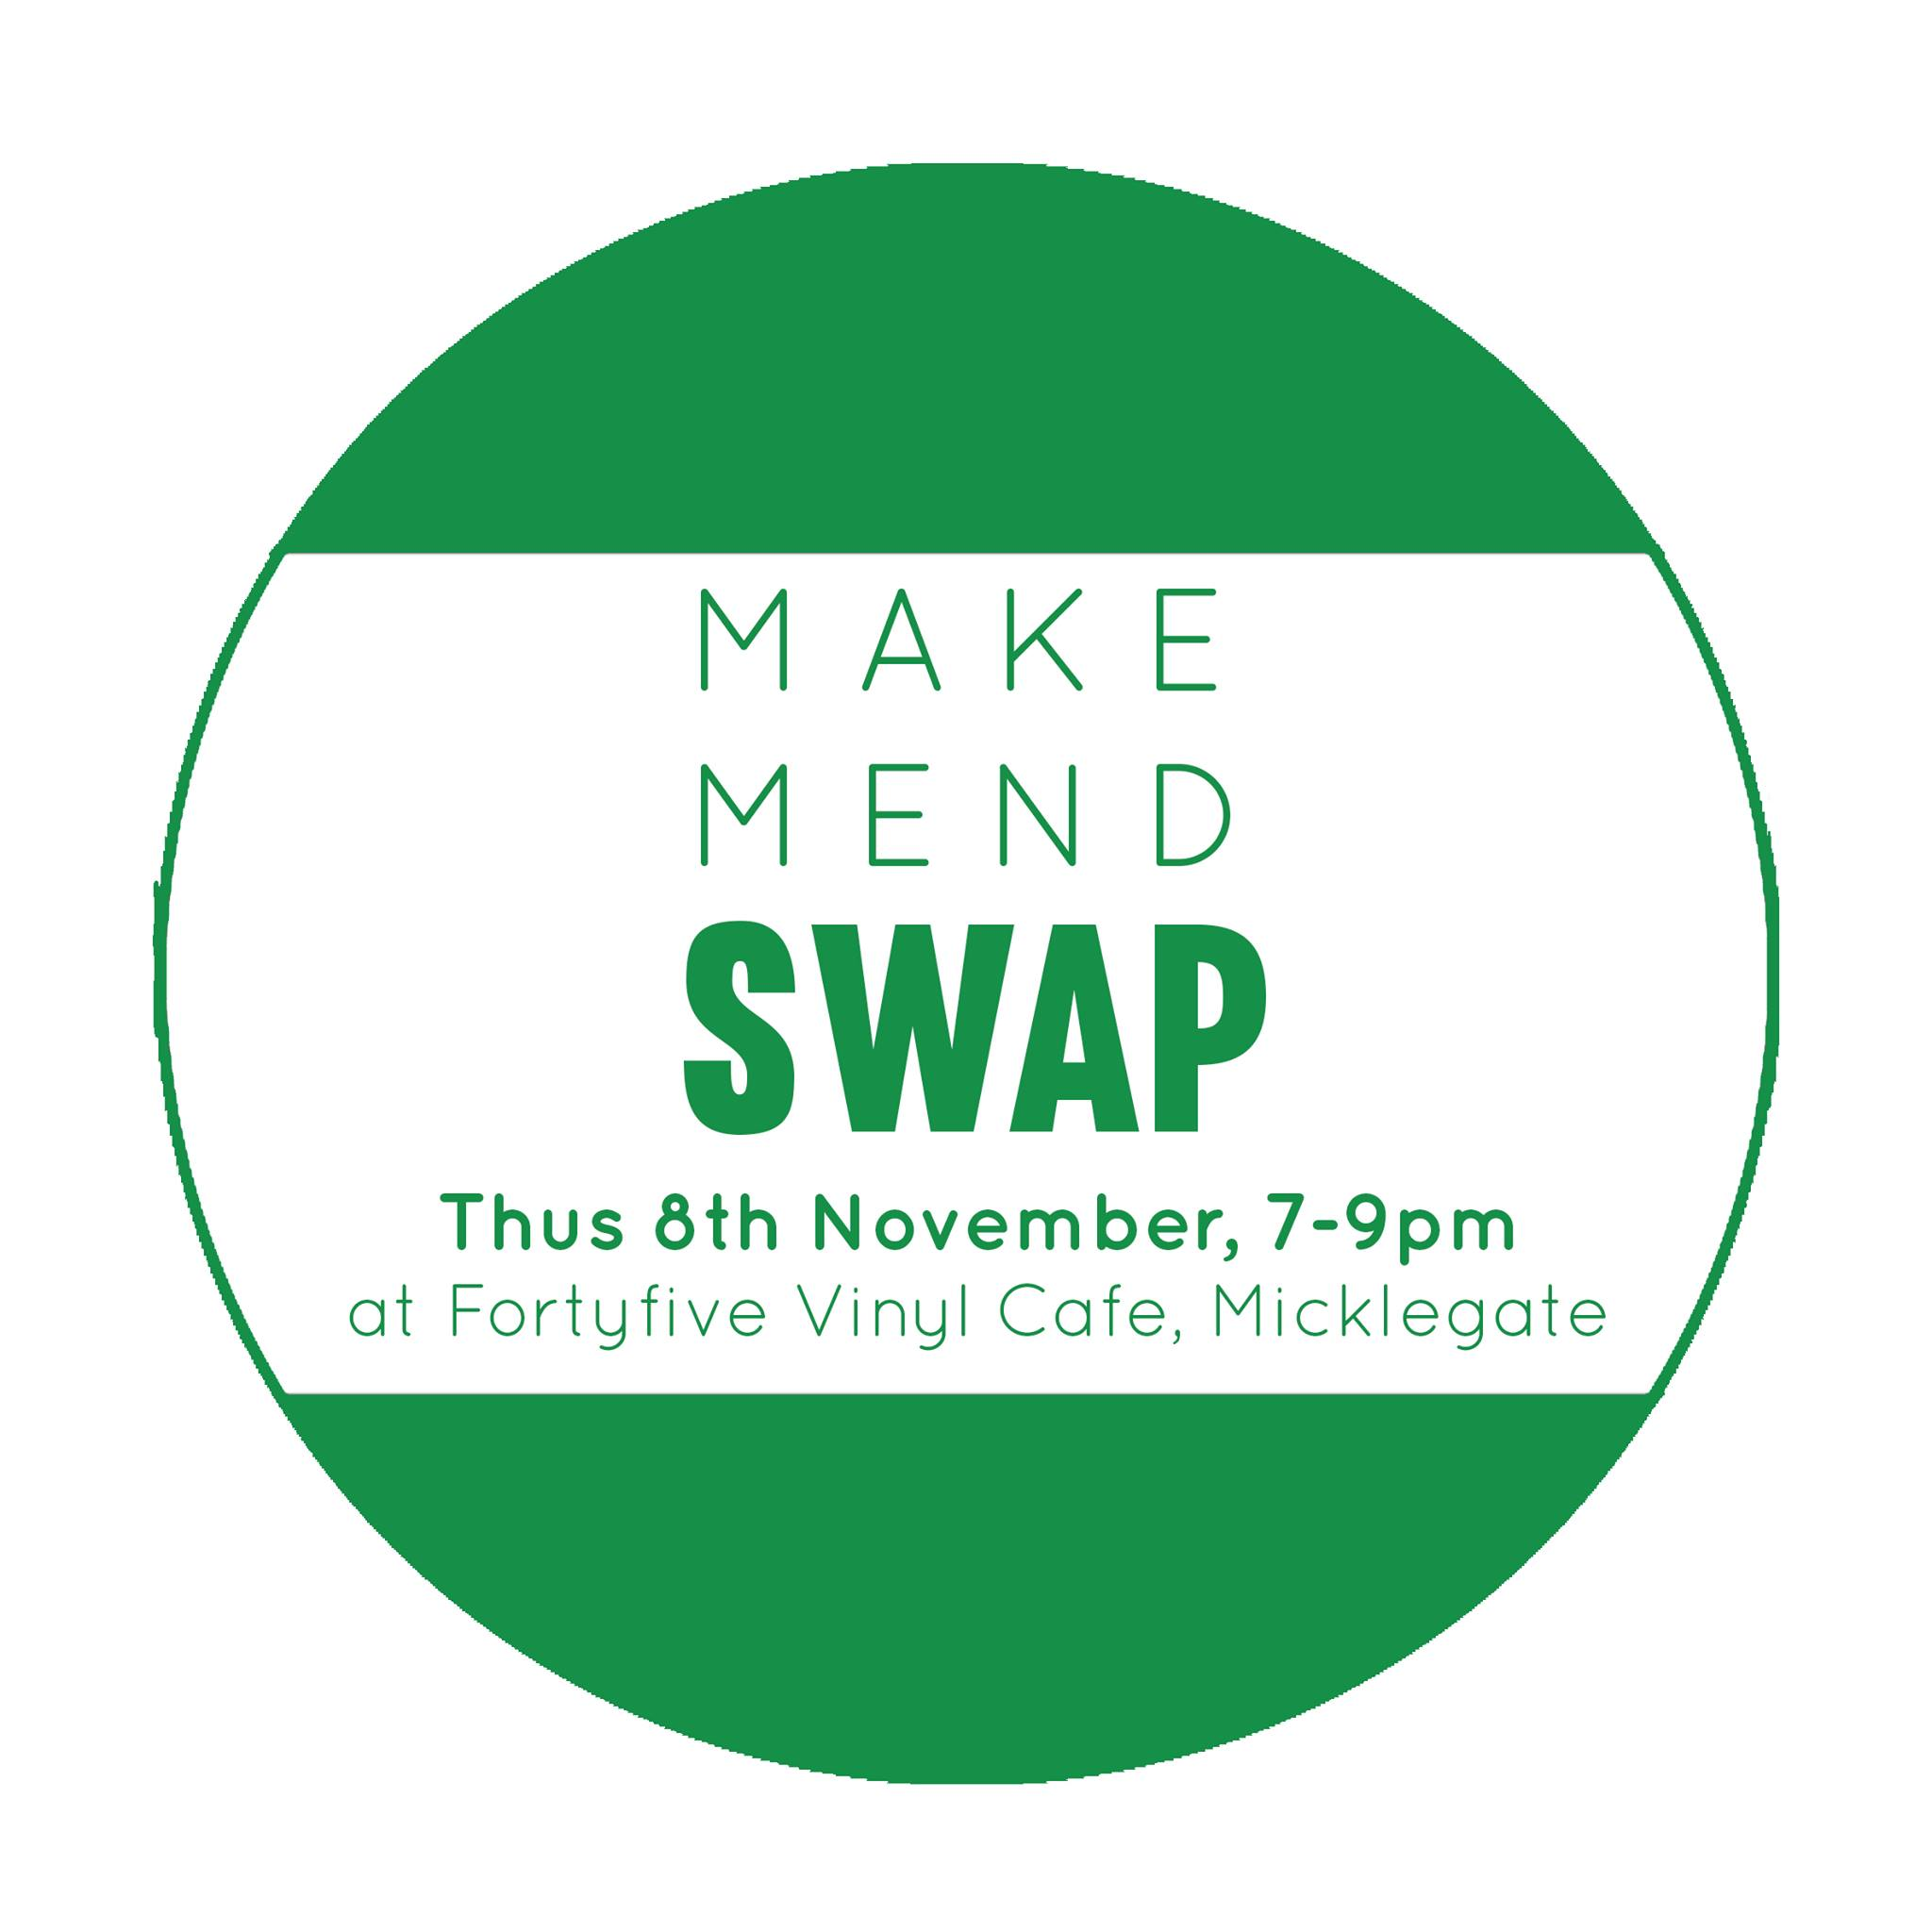 THURS 8TH NOVEMBER -  MAKE MEND SWAP